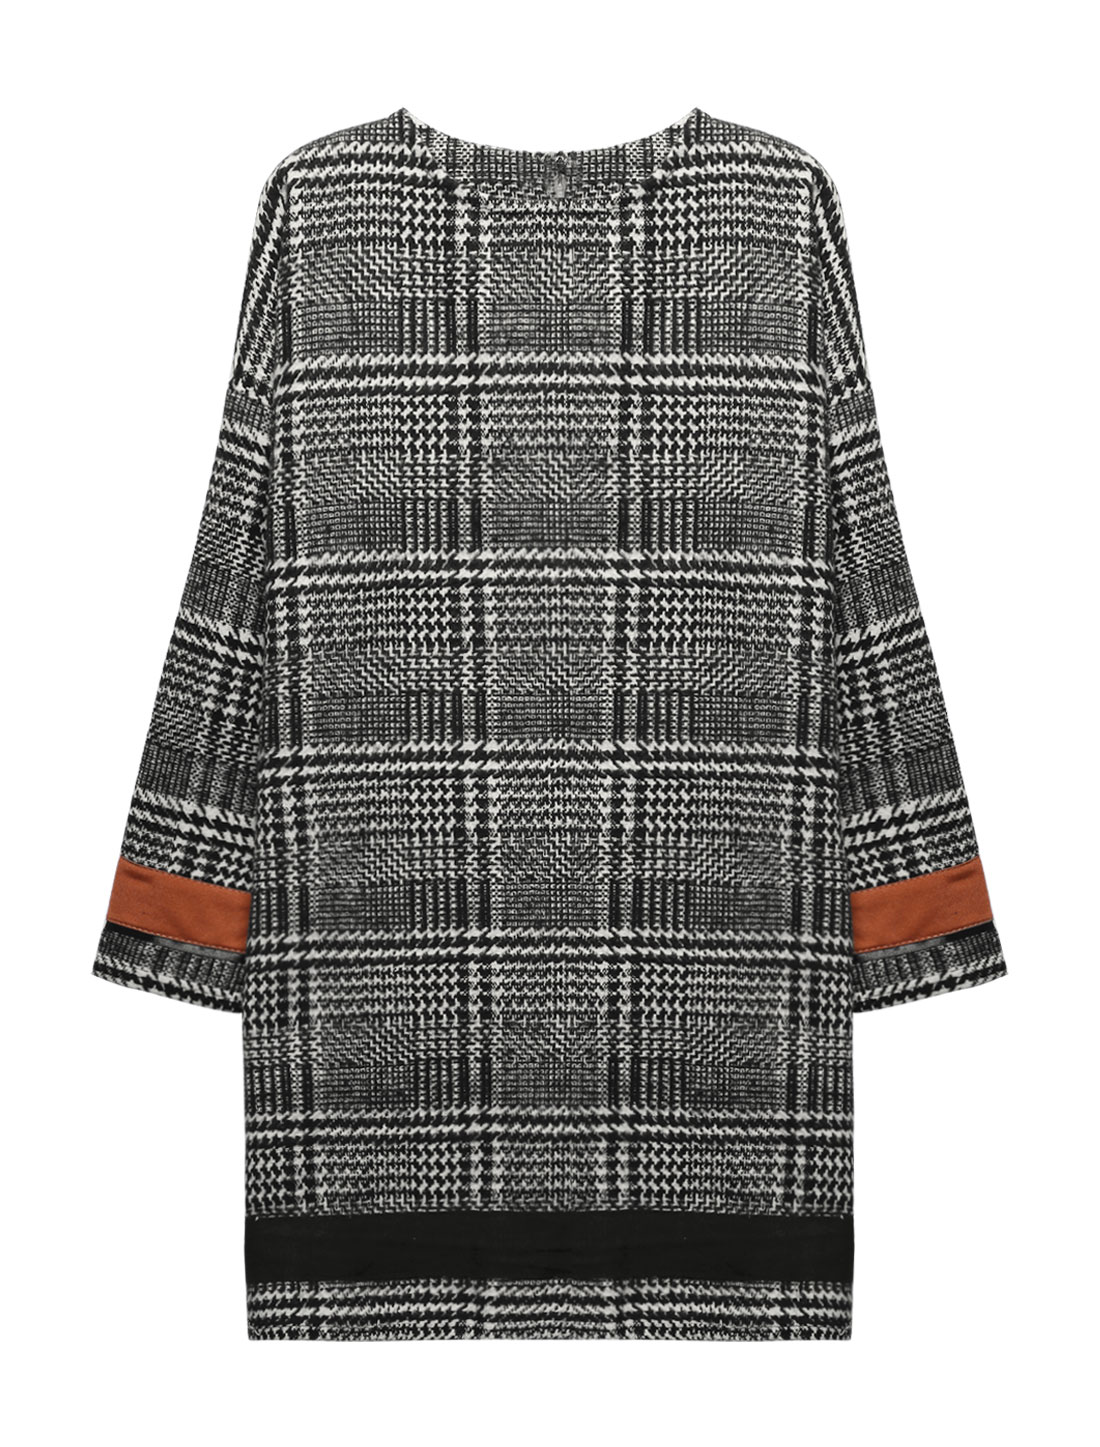 Women Crew Neck Long Sleeves Worsted Plaids Tunic Dress Black Beige S